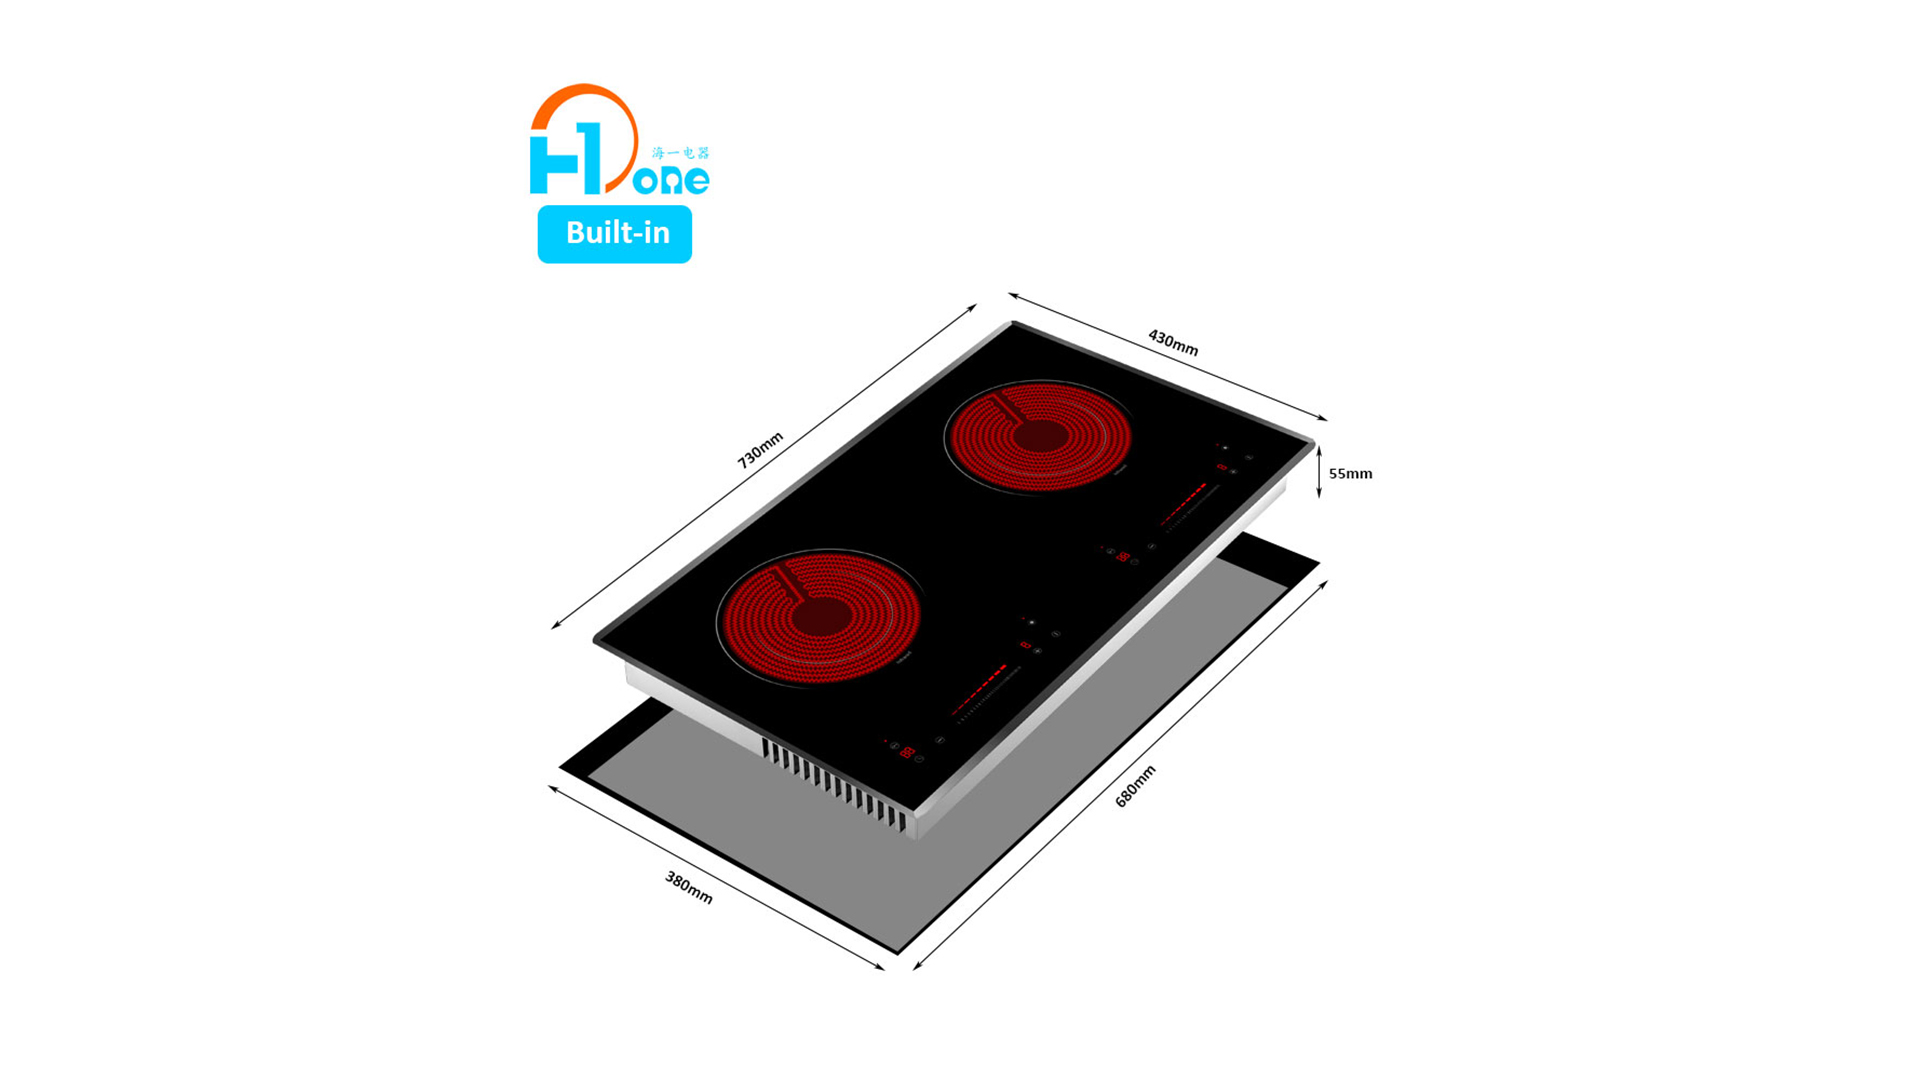 Produsen Desain Asli Cina Shenzhen H-One Built-in Two Burner Horizontal Keramik Hob 8325-201